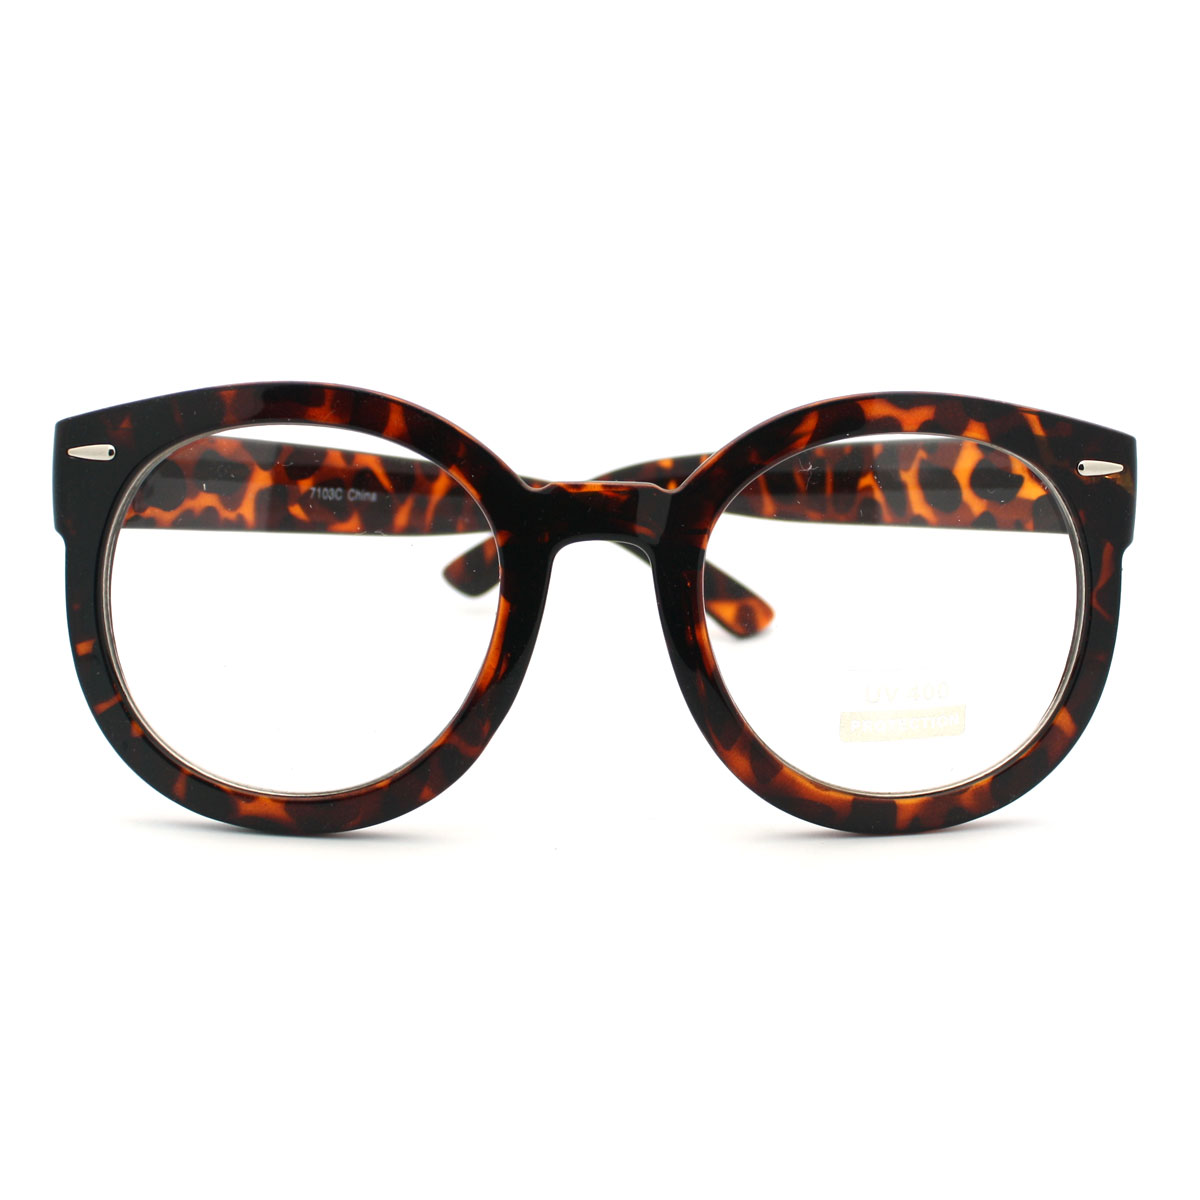 Glasses Frames Black On Top Clear On Bottom : Tort Oversized Round Thick Horn Rim Clear Lens Fashion Eye ...